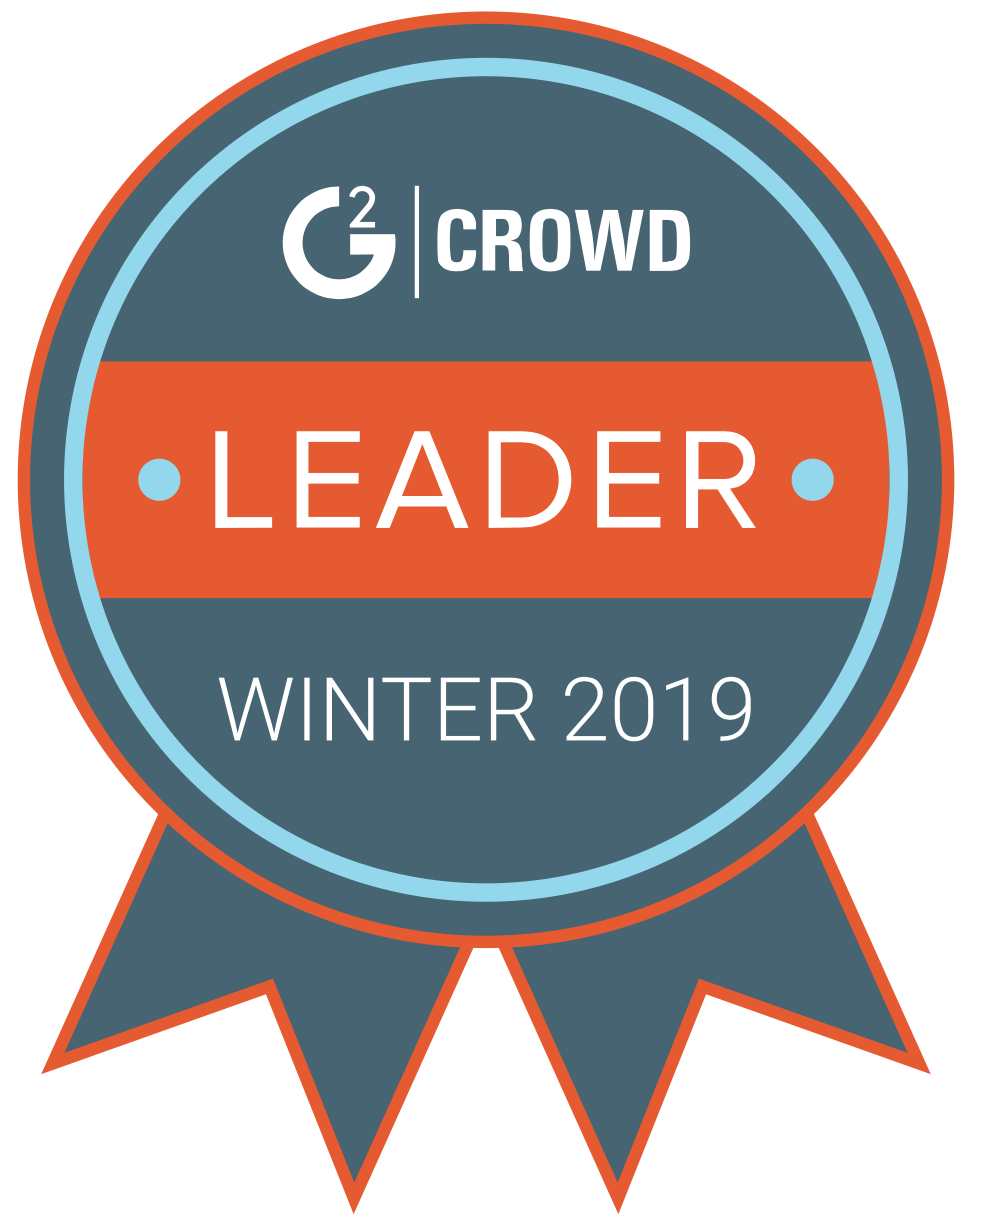 Cleo G2 Crowd Badge for EDI Leader